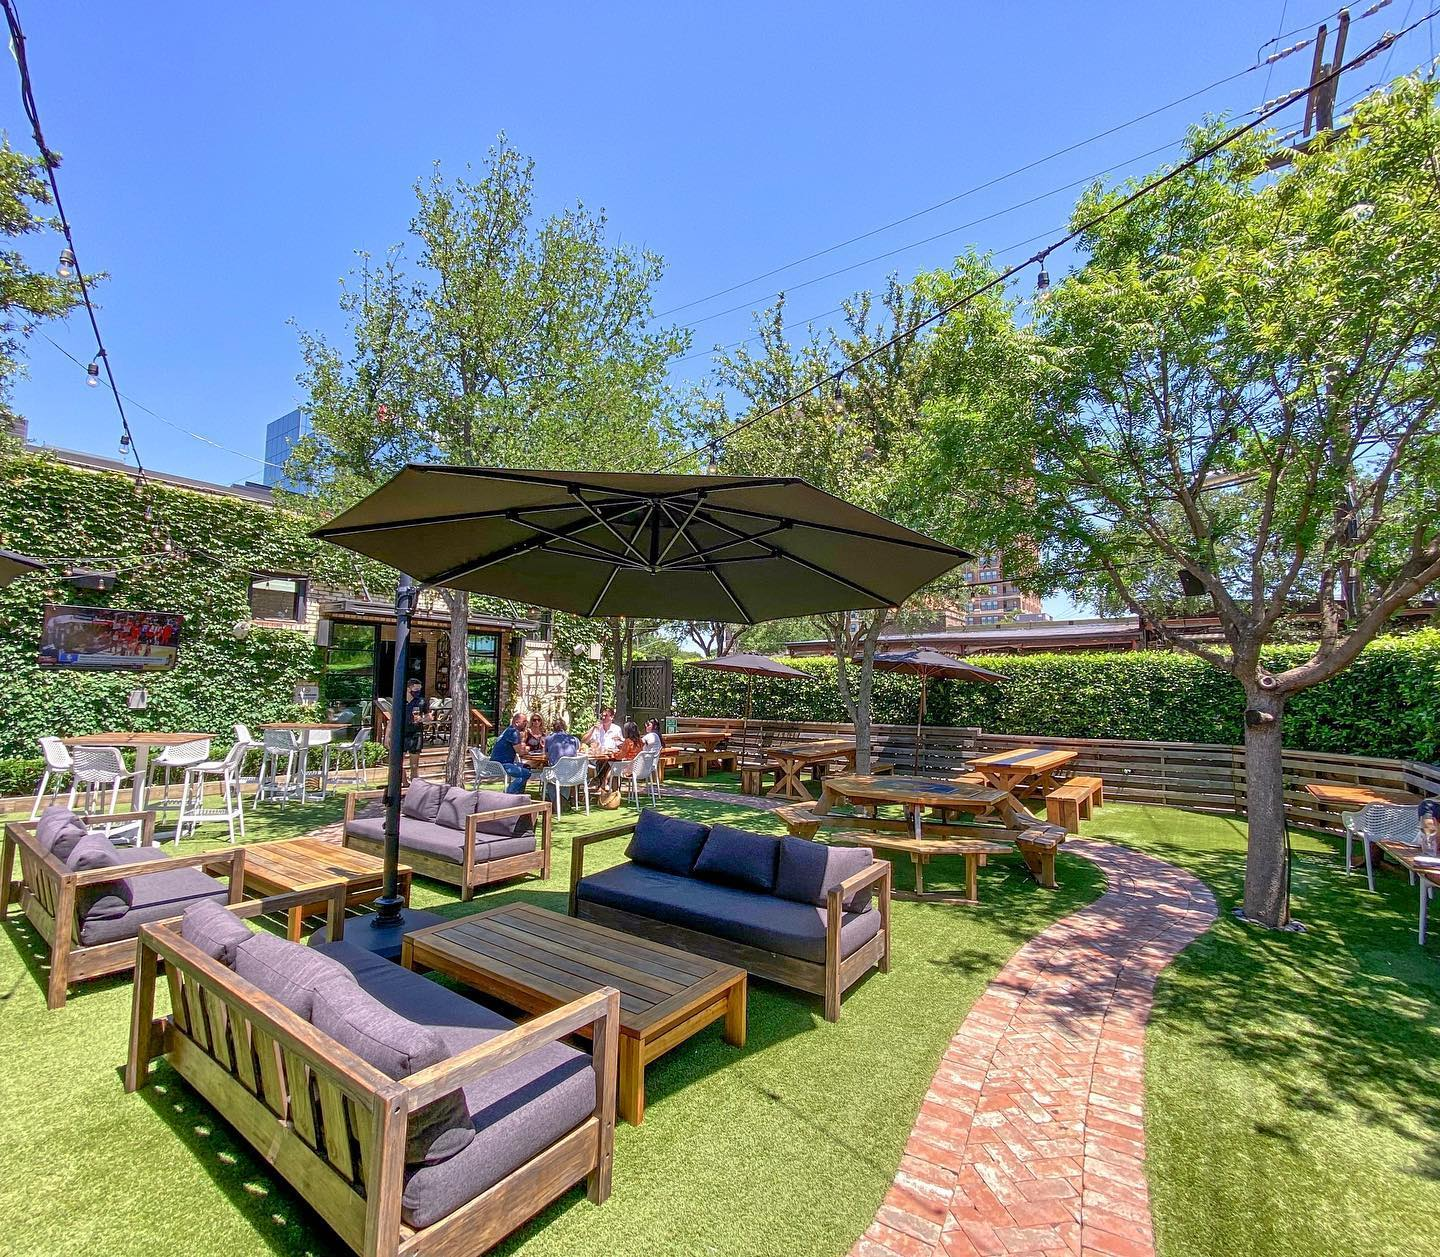 Dallas Best Restaurant And Bar Patios A Running List Of Top Spots For Socially Distanced And Safe Outdoor Dining